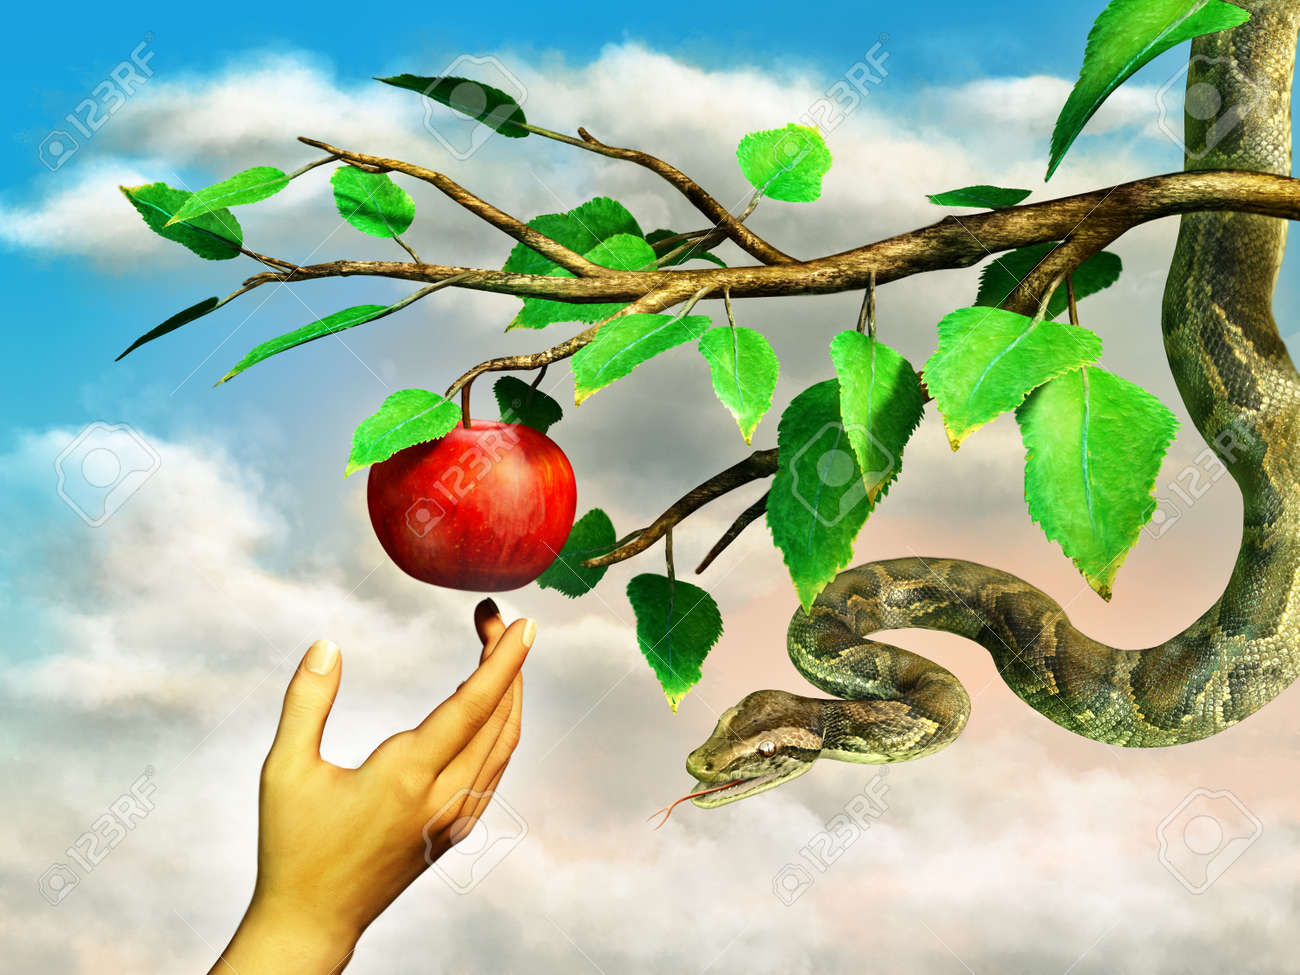 Eva's hand reaching for the forbidden apple. A snake is hanging from the tree. Digital illustration. - 31970429